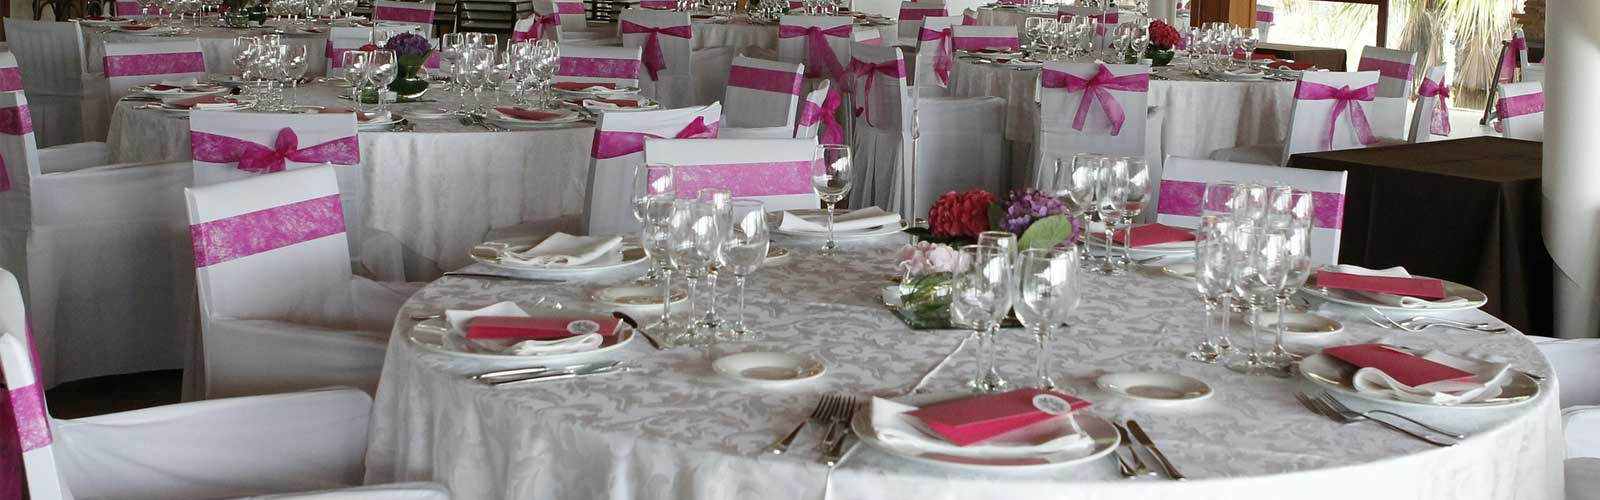 Special event rentals in New Orleans